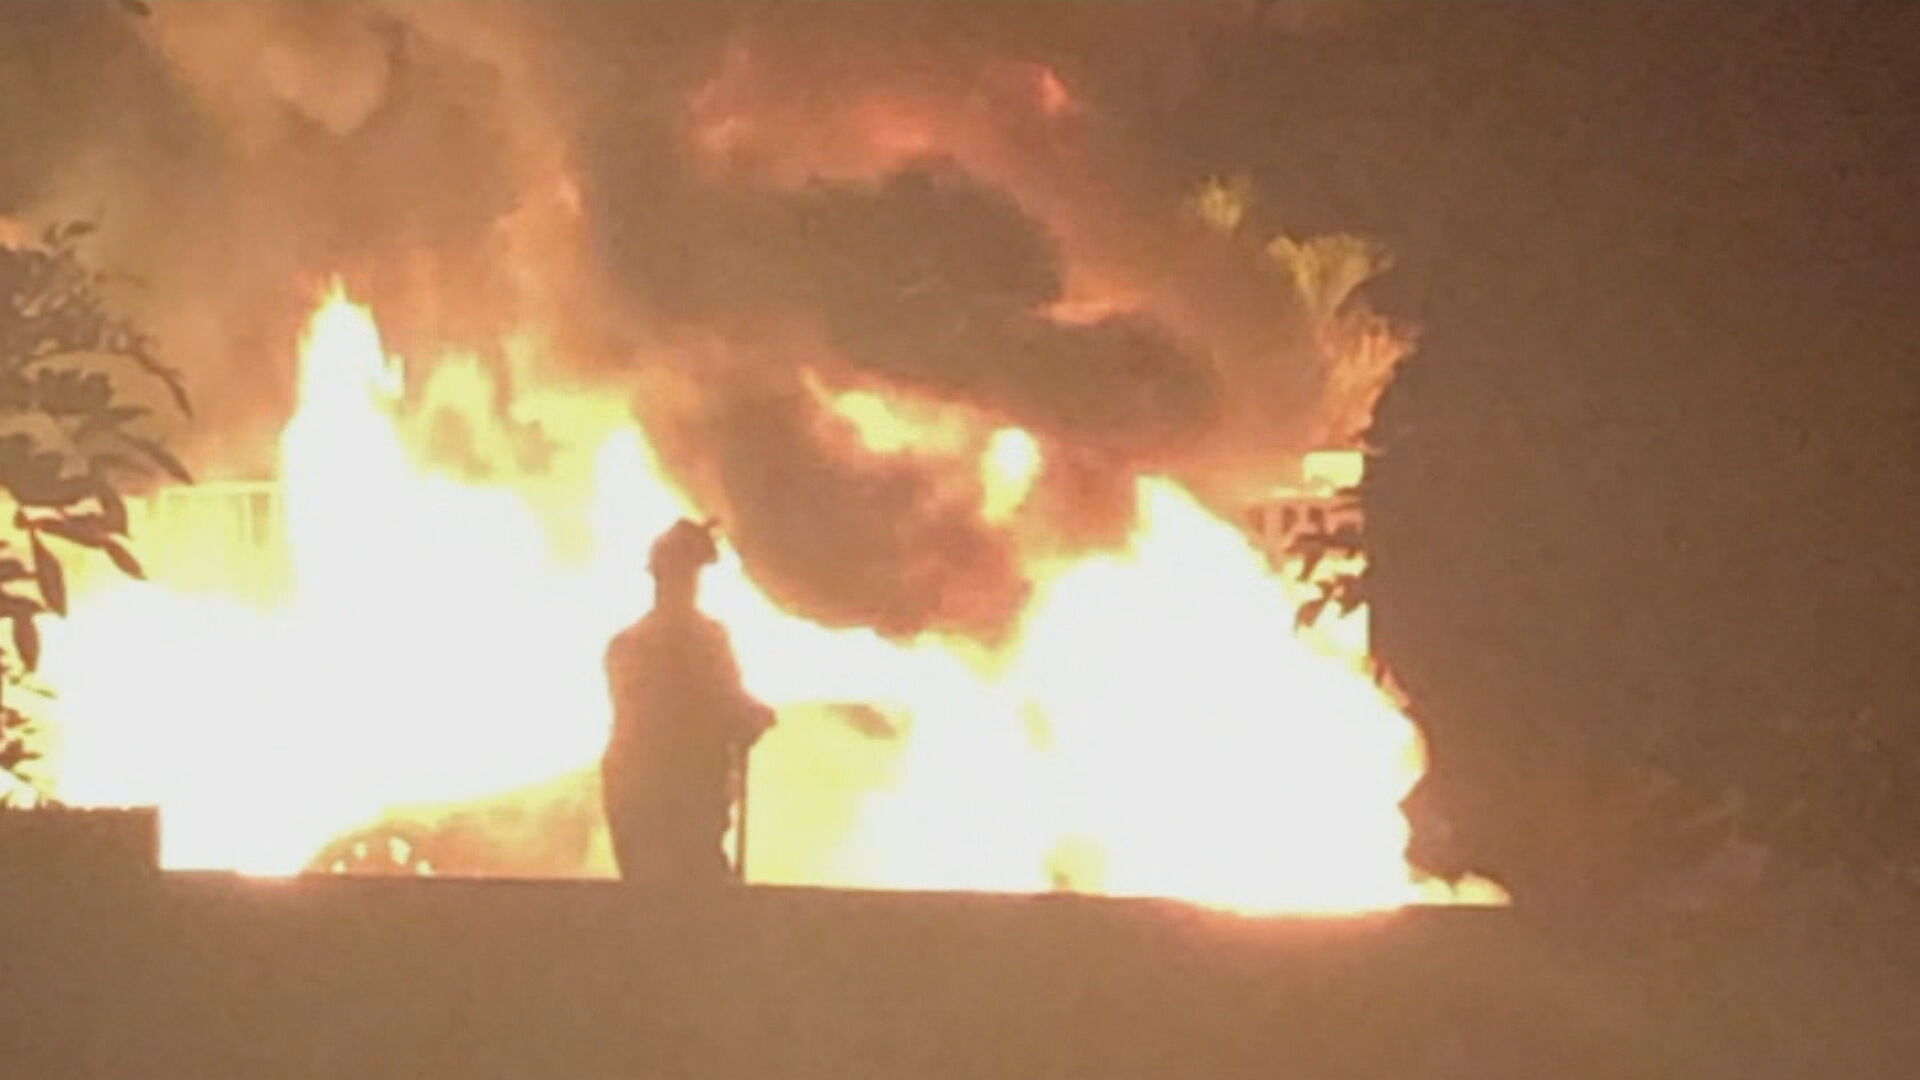 The inferno that engulfed the vehicle.